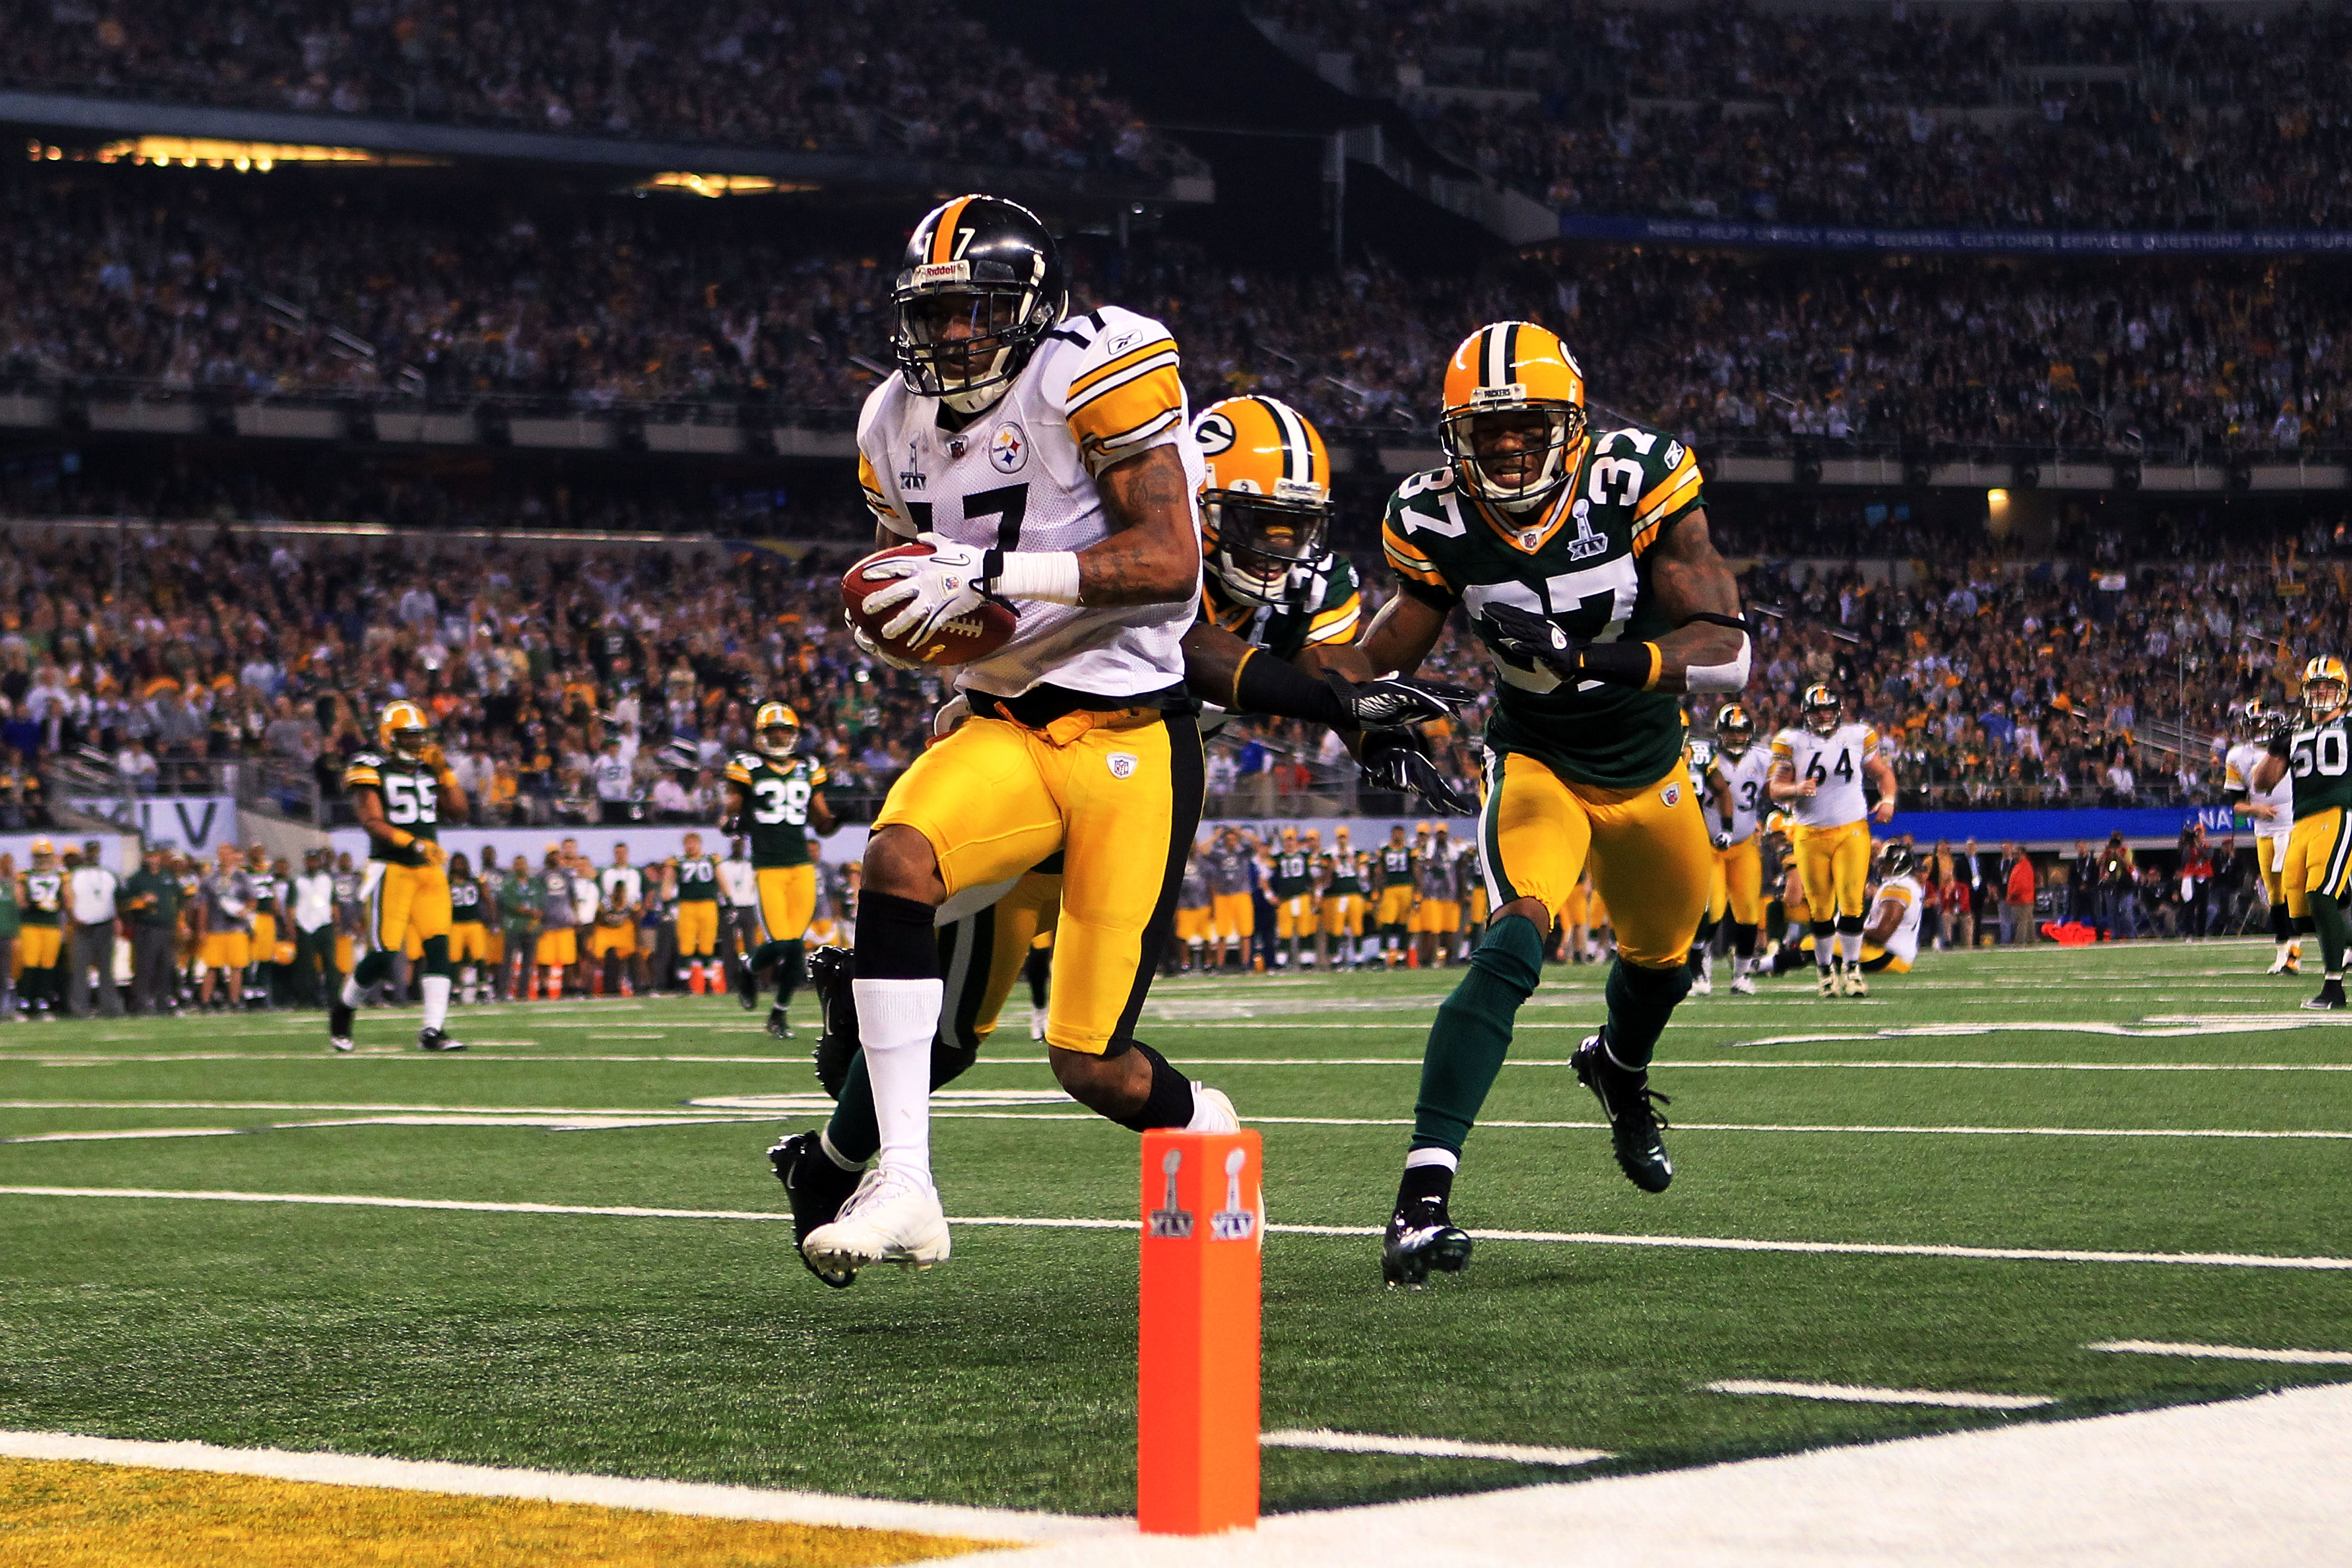 ARLINGTON, TX - FEBRUARY 06:  Mike Wallace #17 of the Pittsburgh Steelers runs for 25 yard touchdown after catching a pass against Sam Shields #37 of the Green Bay Packers during the fourth quarter of Super Bowl XLV at Cowboys Stadium on February 6, 2011